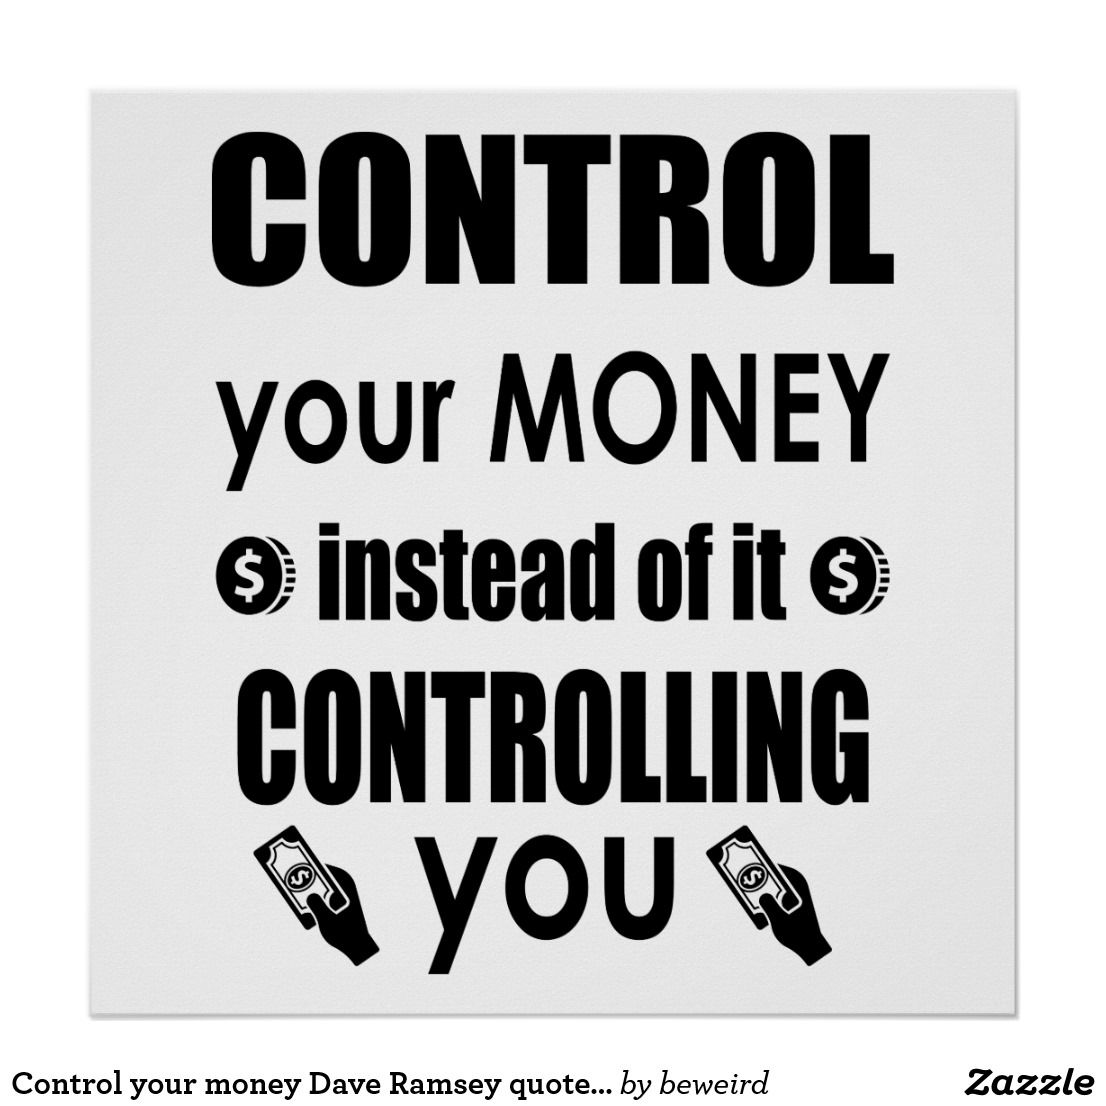 Control your money dave ramsey quote poster